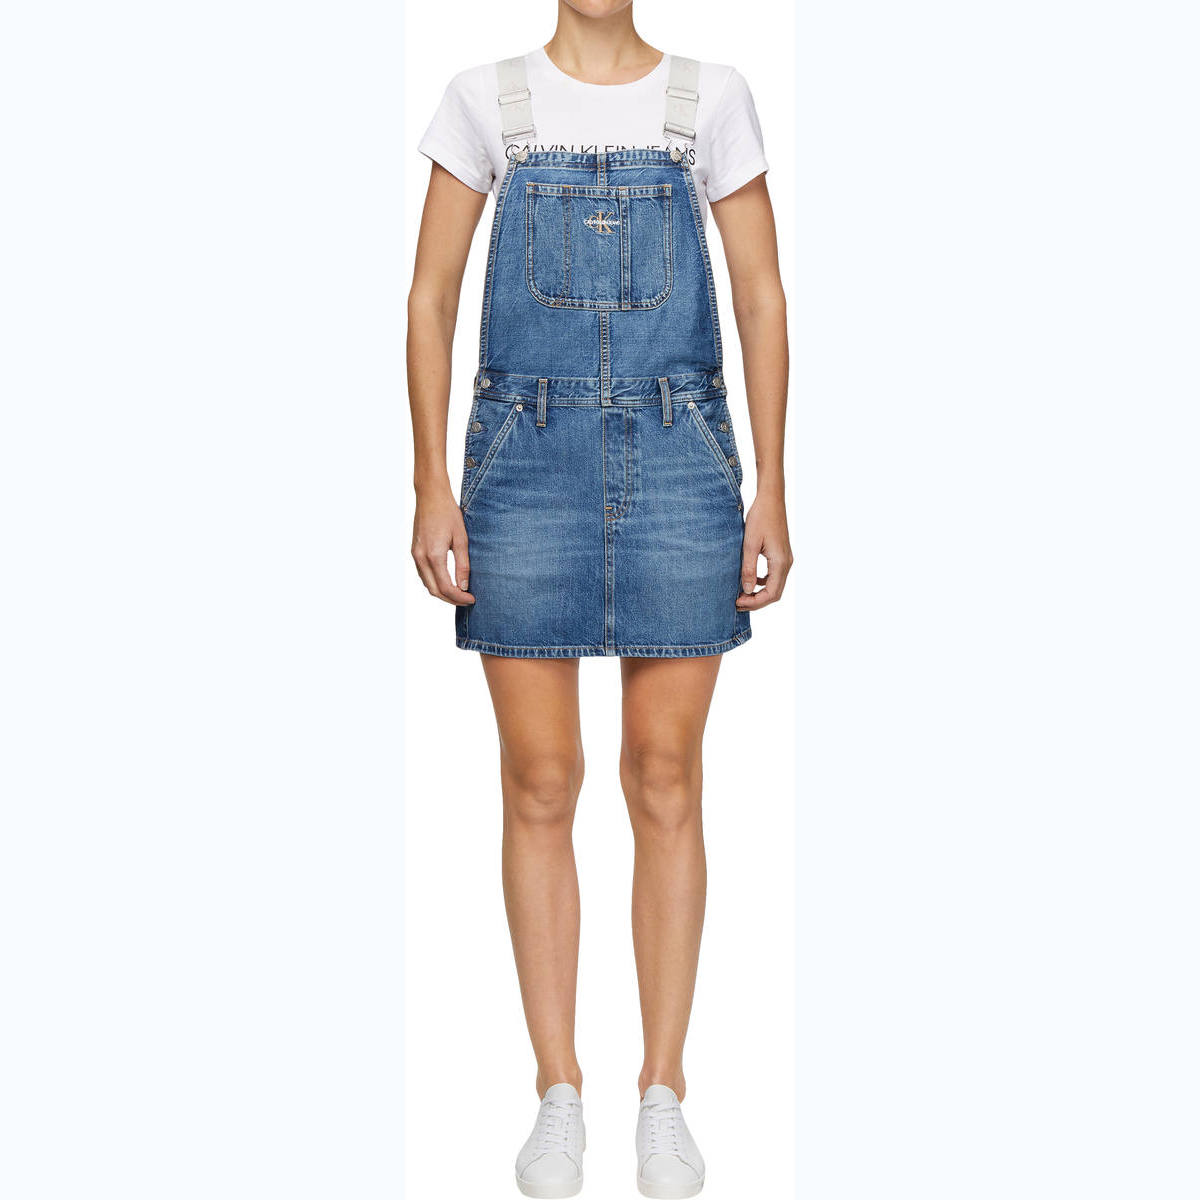 ICONICS DUNGAREE DRESS